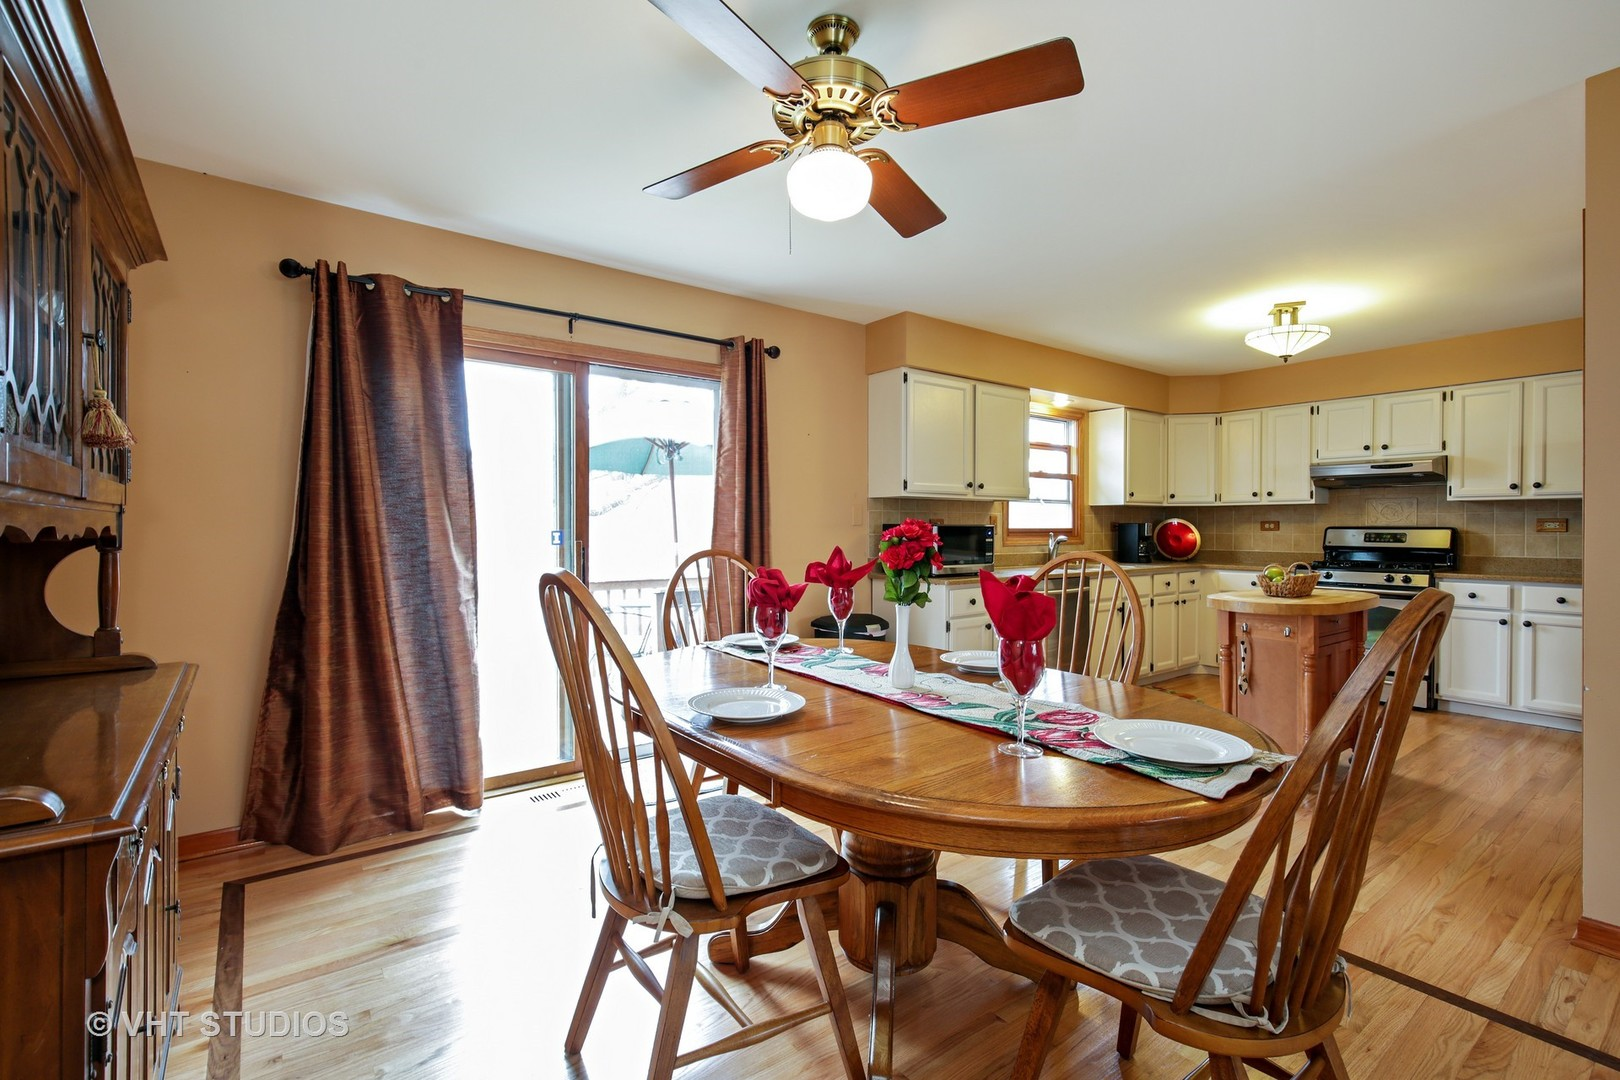 meet fox river grove singles 44 single family homes for sale in fox river grove il view pictures of homes, review sales history, and use our detailed filters to find the perfect place.